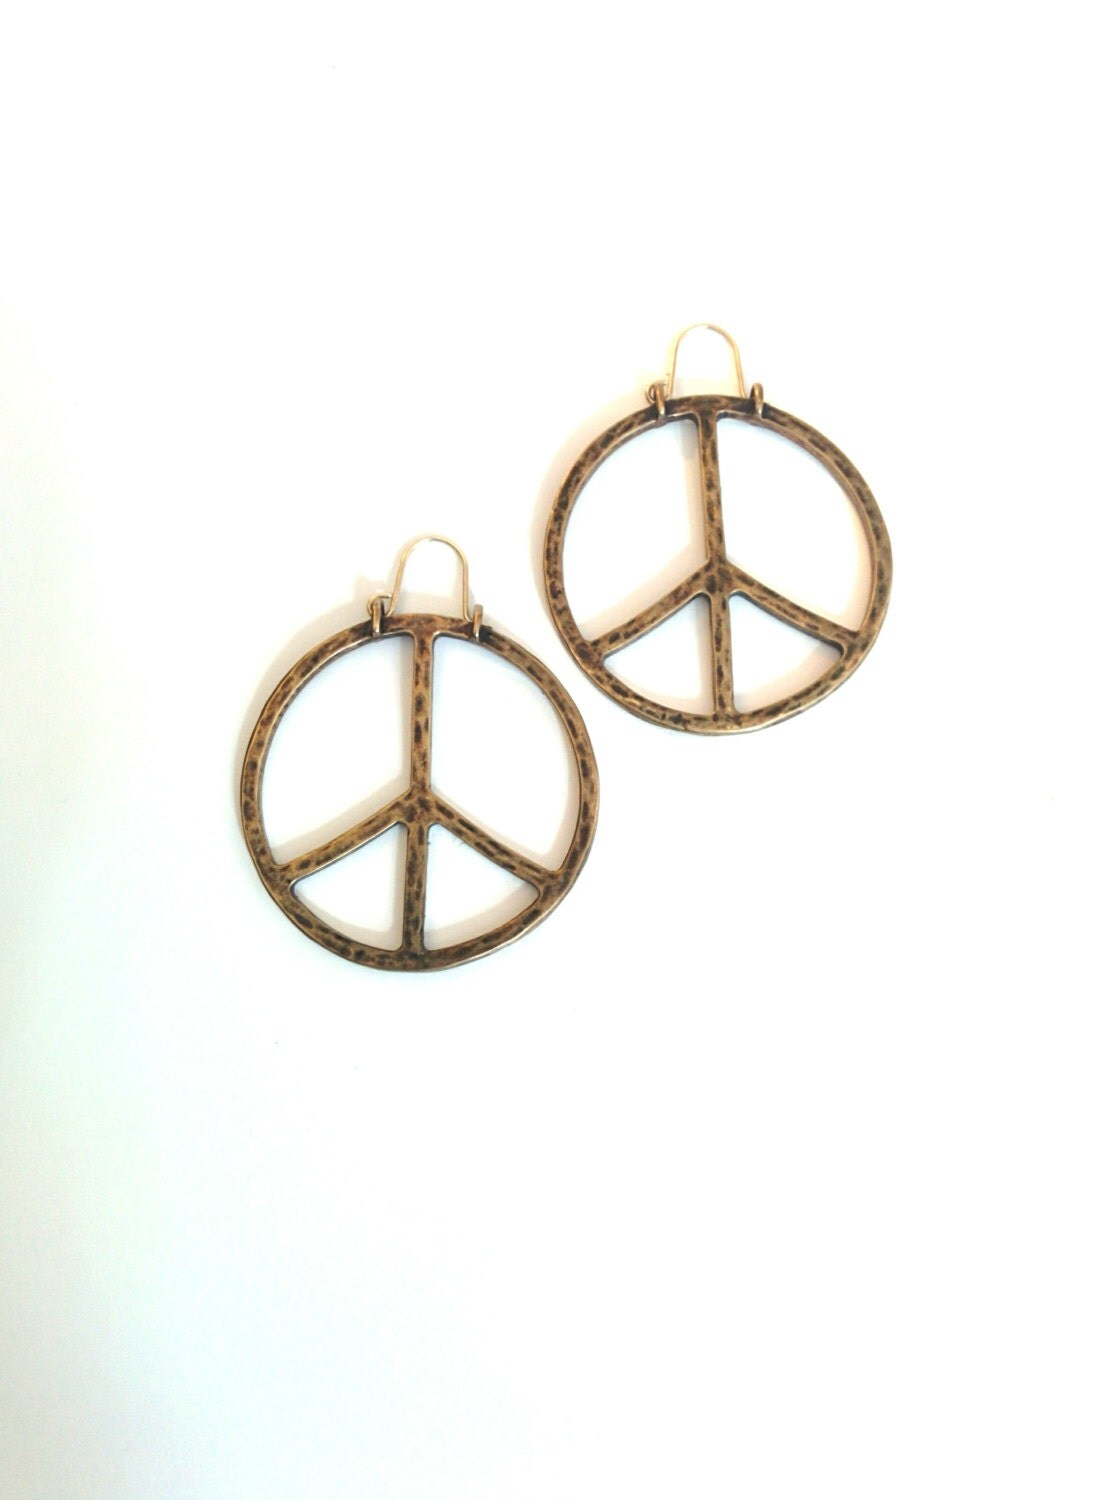 Vintage 1970s Peace Sign earrings hoop earrings by BambooBimbo